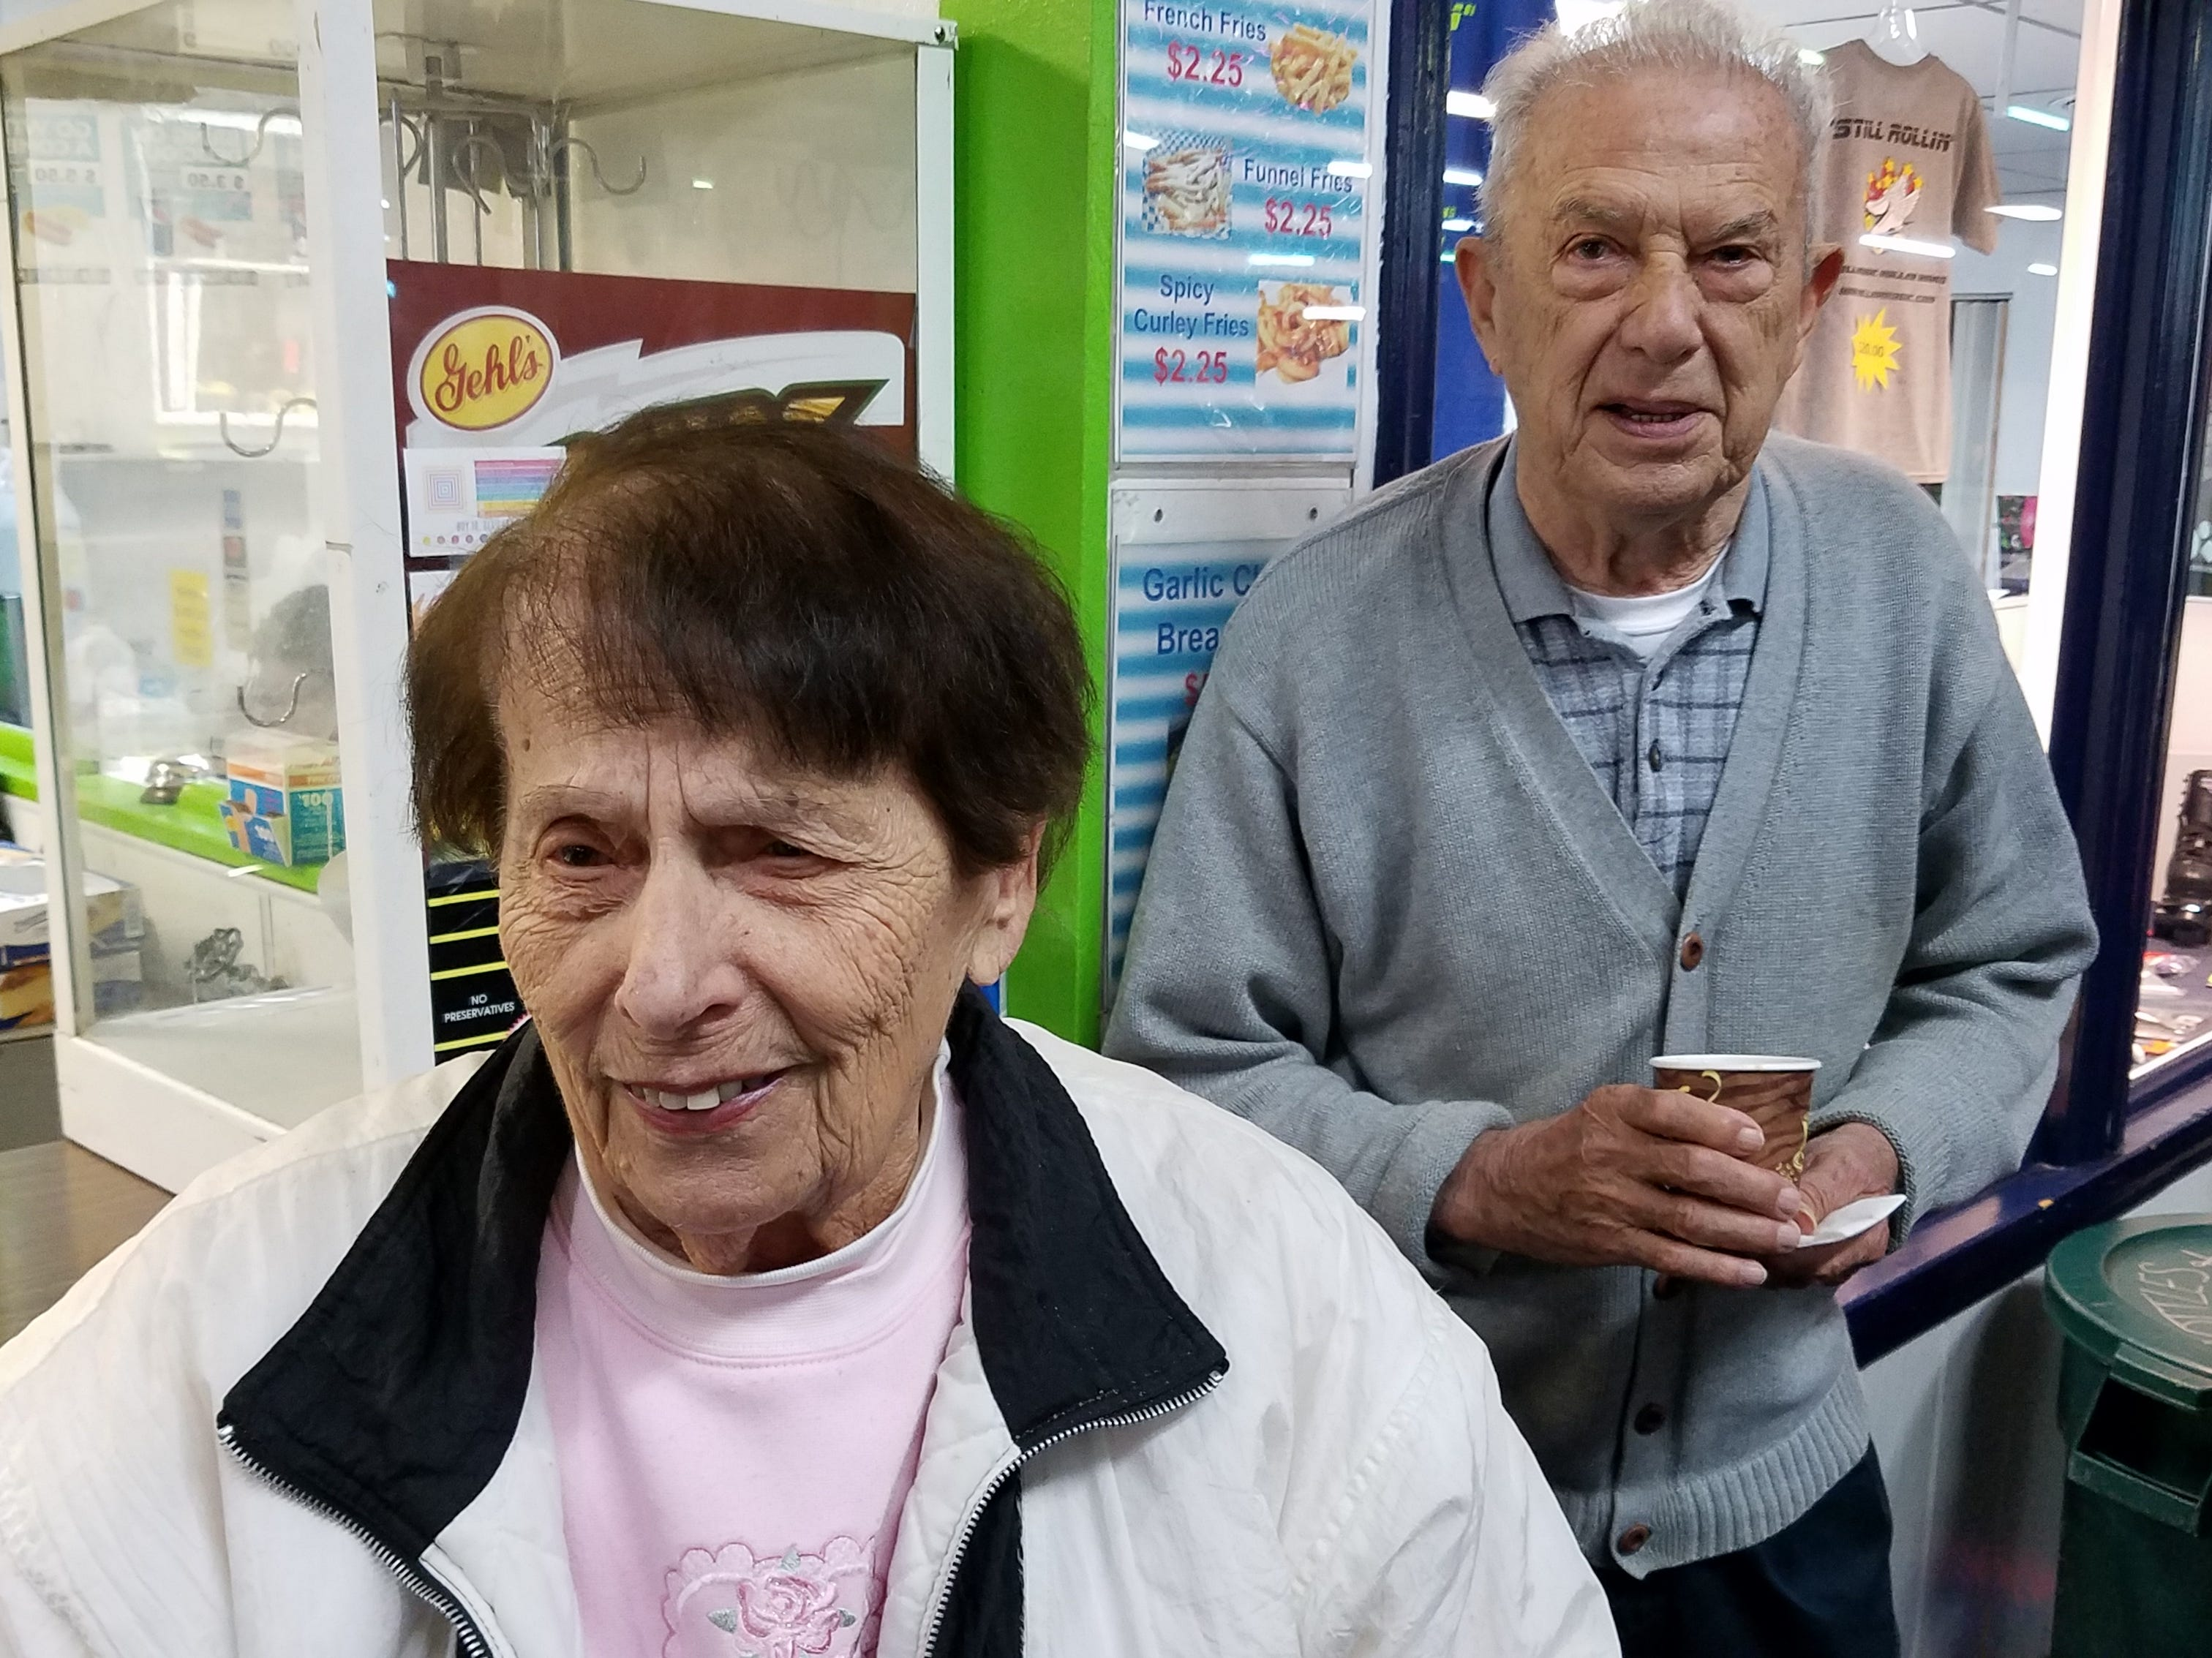 At least twice a week, more than 20 seniors, including Danny and Terry Yovanovich of Woodbridge, regularly gather at South Amboy Arenaand take to the rink for a couple hours of roller skating. They range in age from 55 to 100.